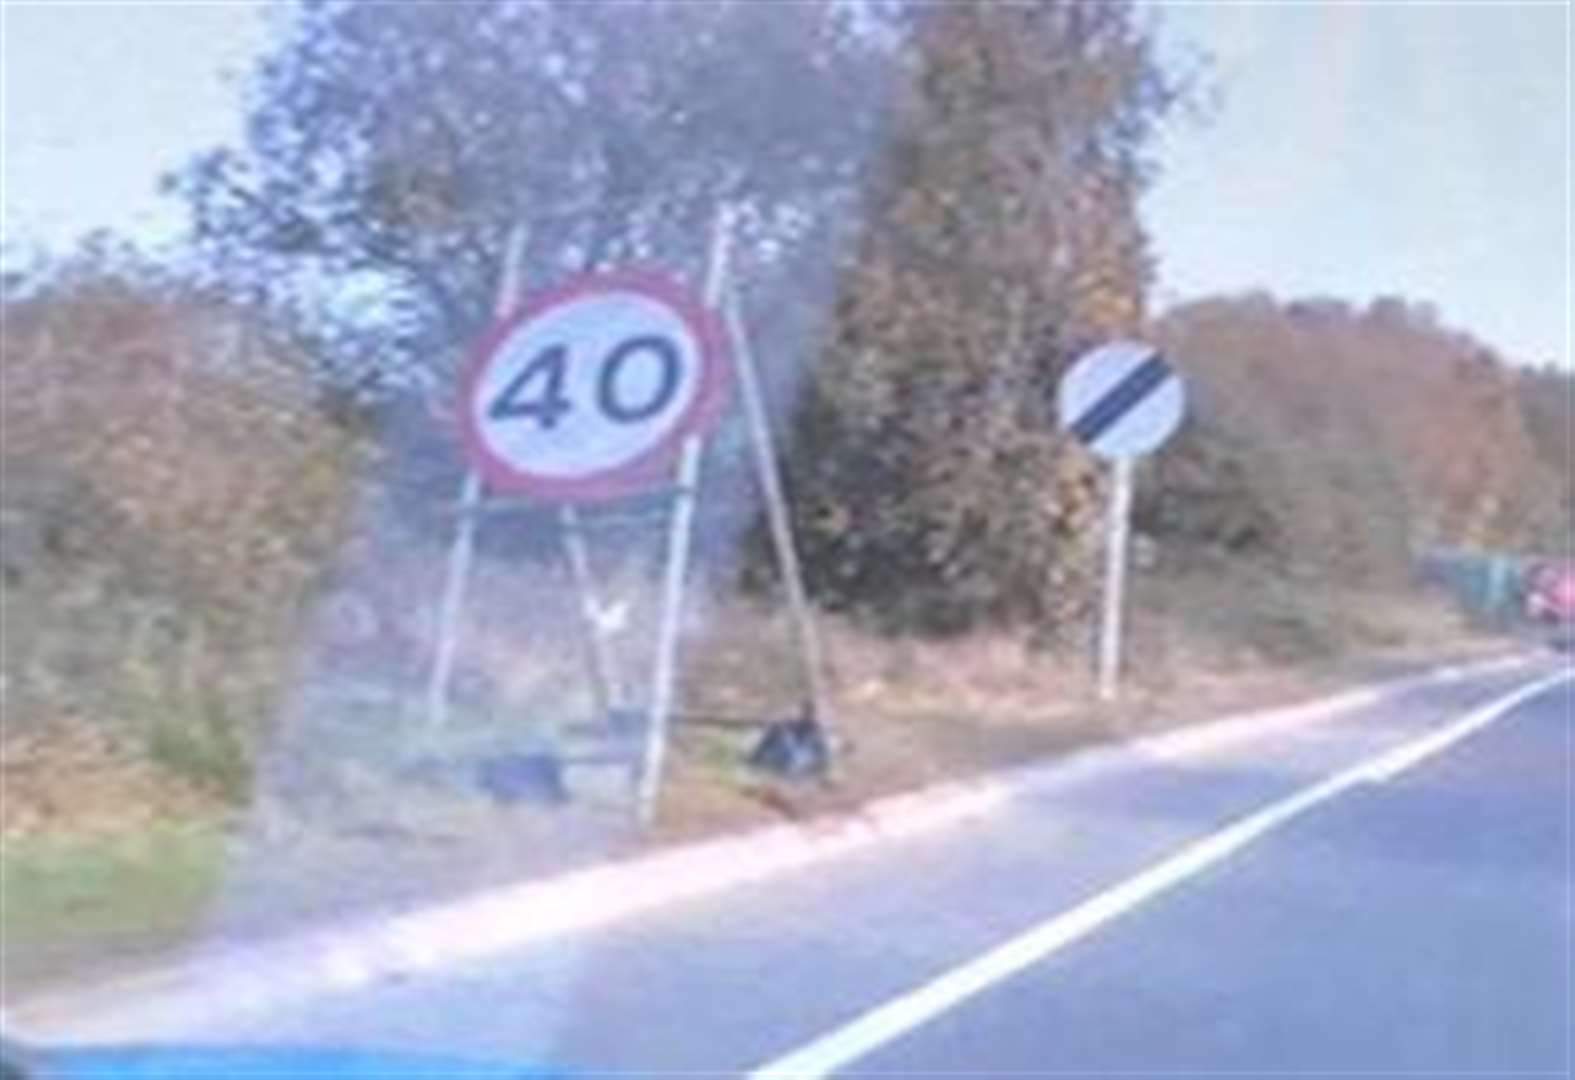 Conflicting speed signs confuse motorists